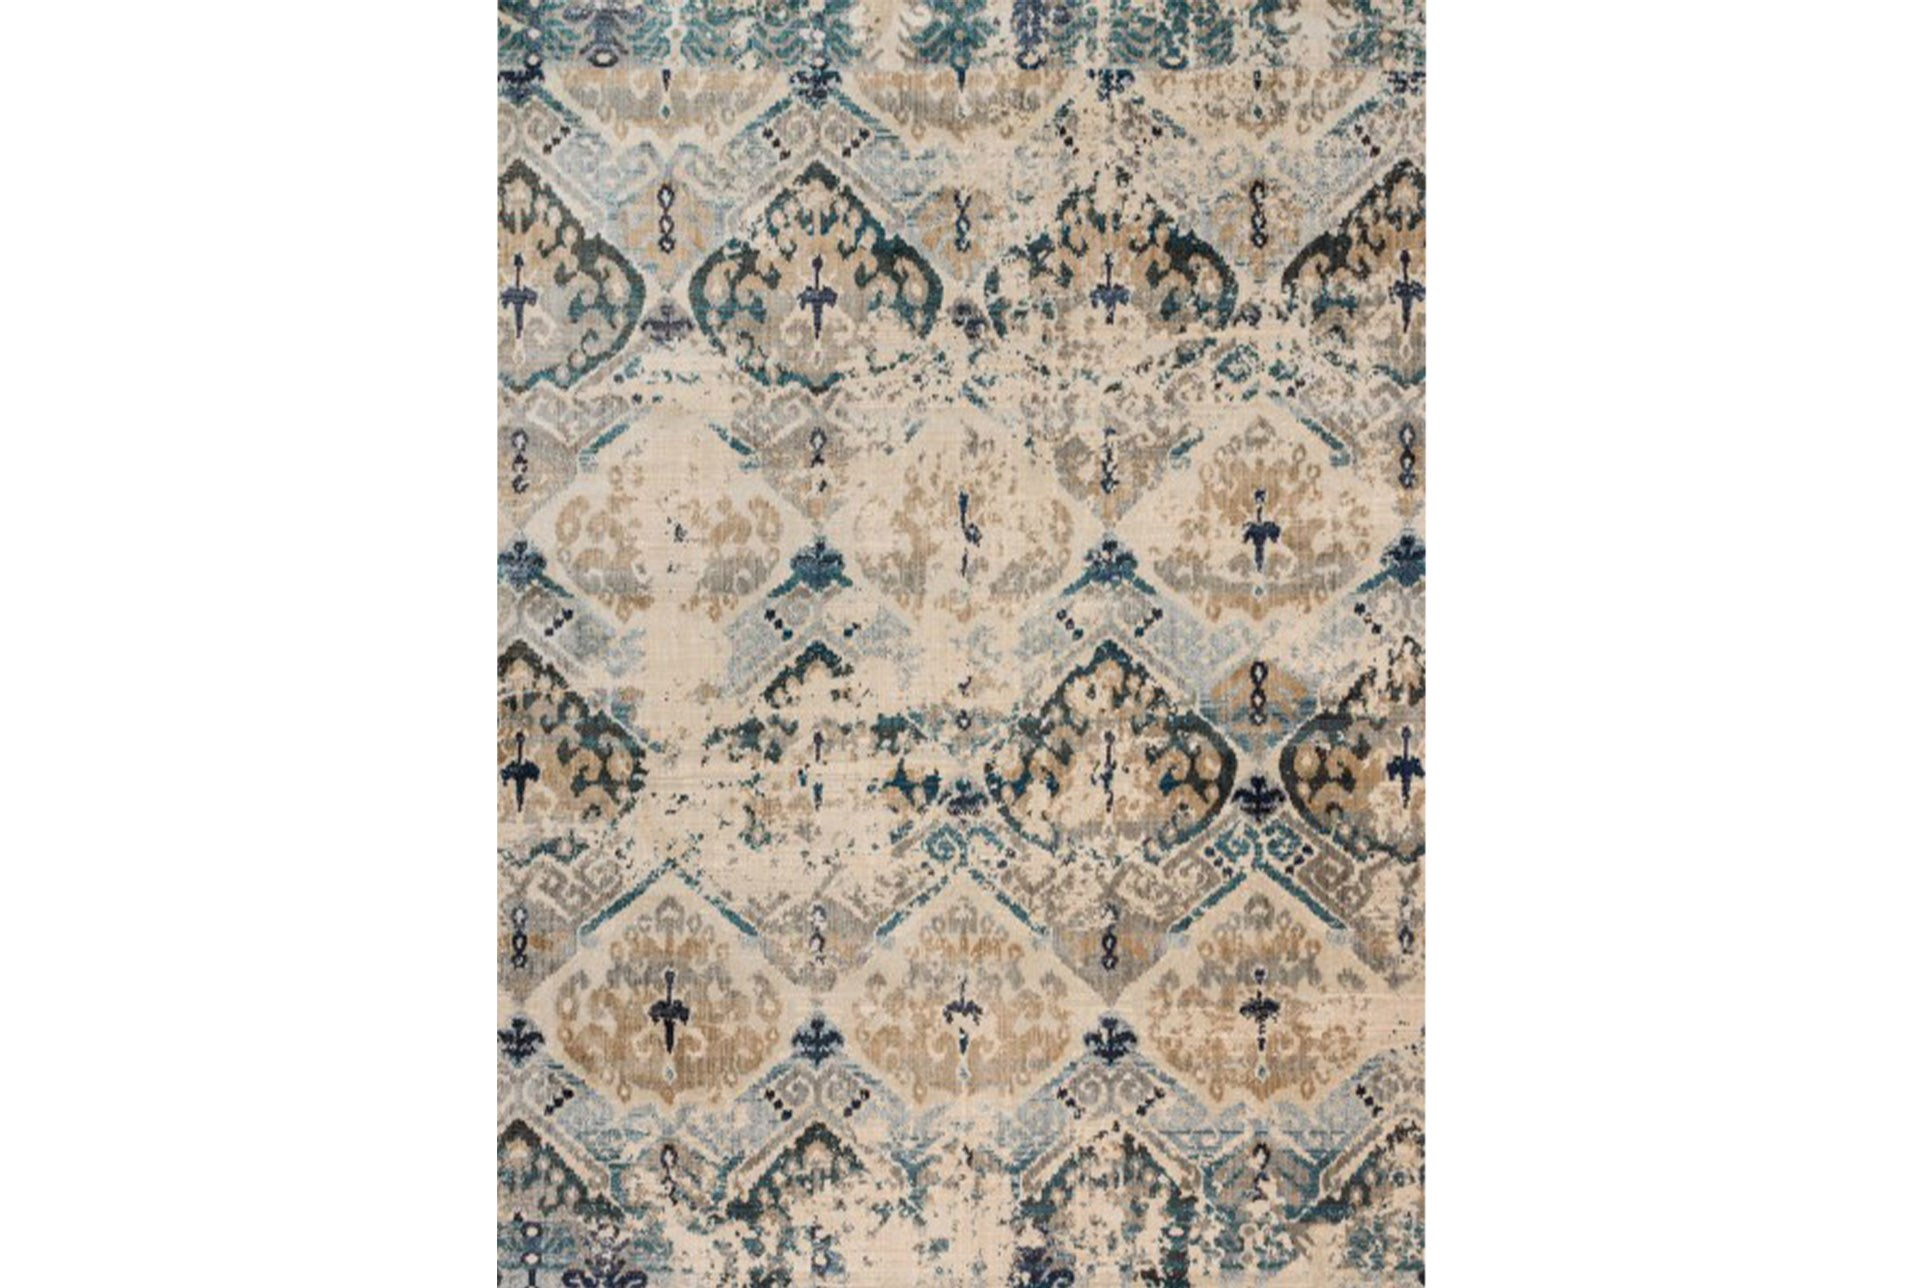 63x92 Rug Magnolia Home Kivi Sand Ocean By Joanna Gaines Living Spaces